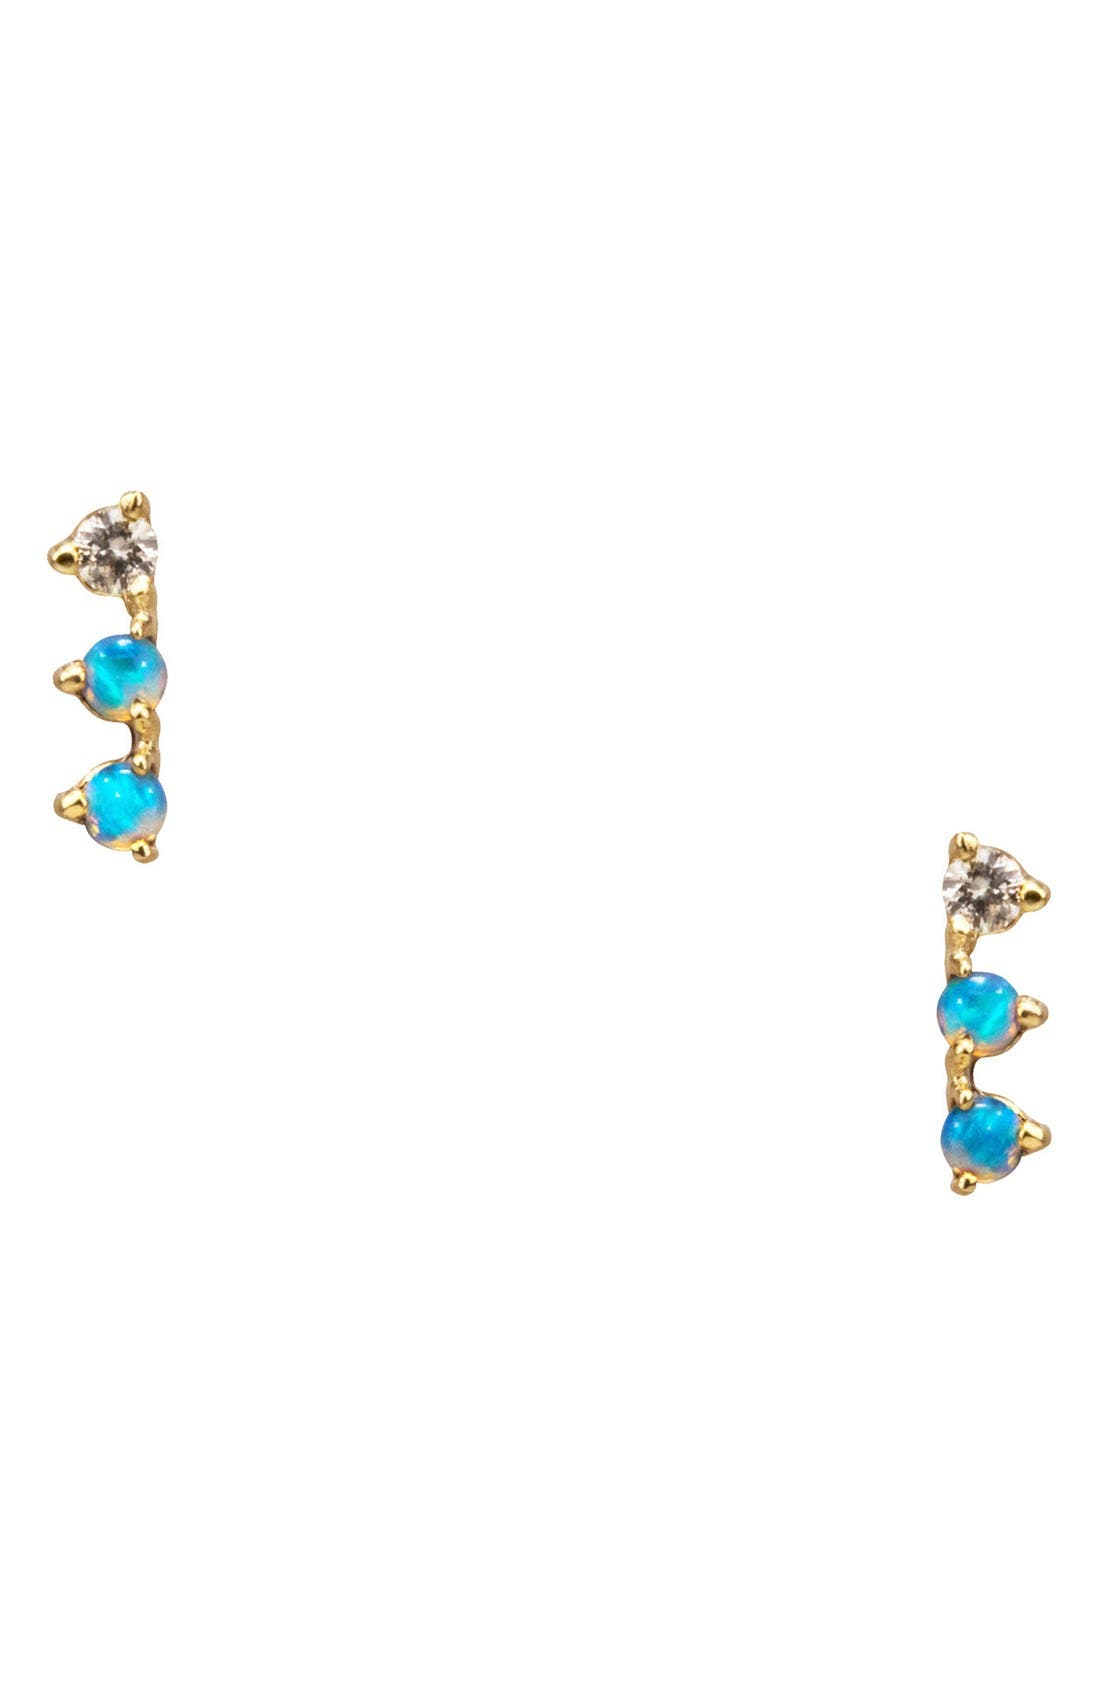 Counting Collection Three-Step Opal & Diamond Statement Earrings,                         Main,                         color, PINK TOURMALINE SUNSTONE WHITE